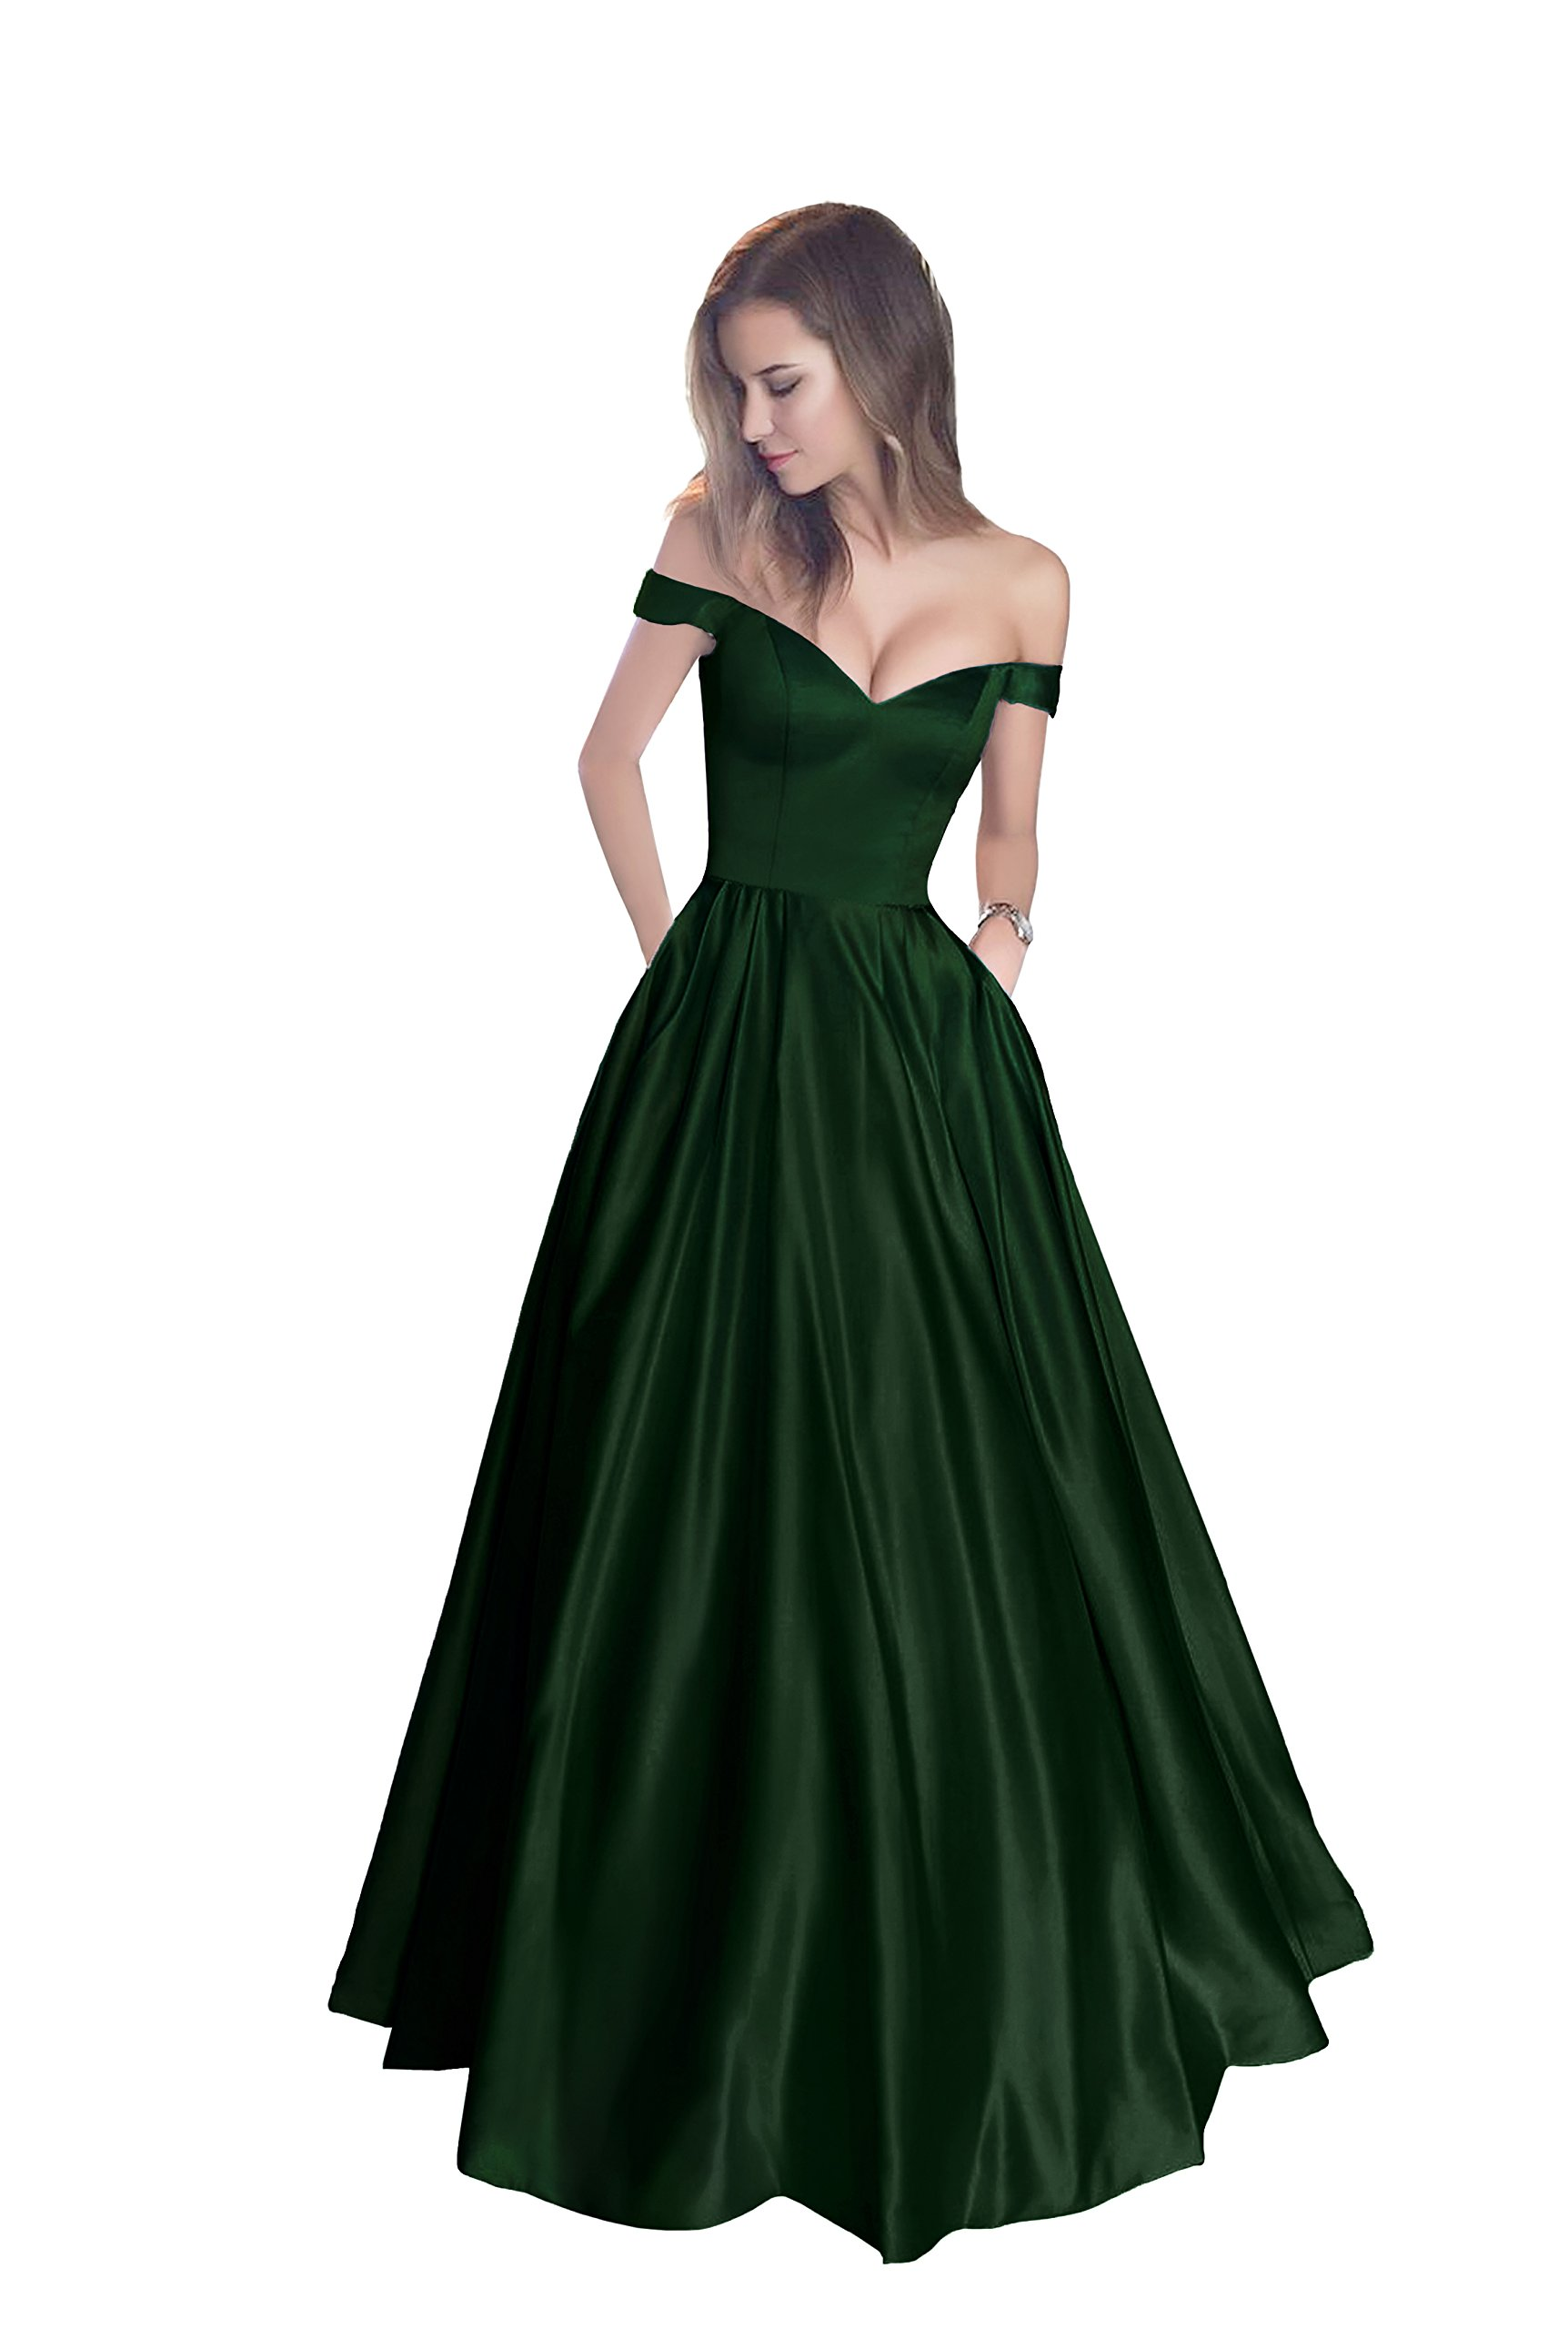 Harsuccting Off The Shoulder Beaded Satin Evening Prom Dress with Pocket Corset Without Belt